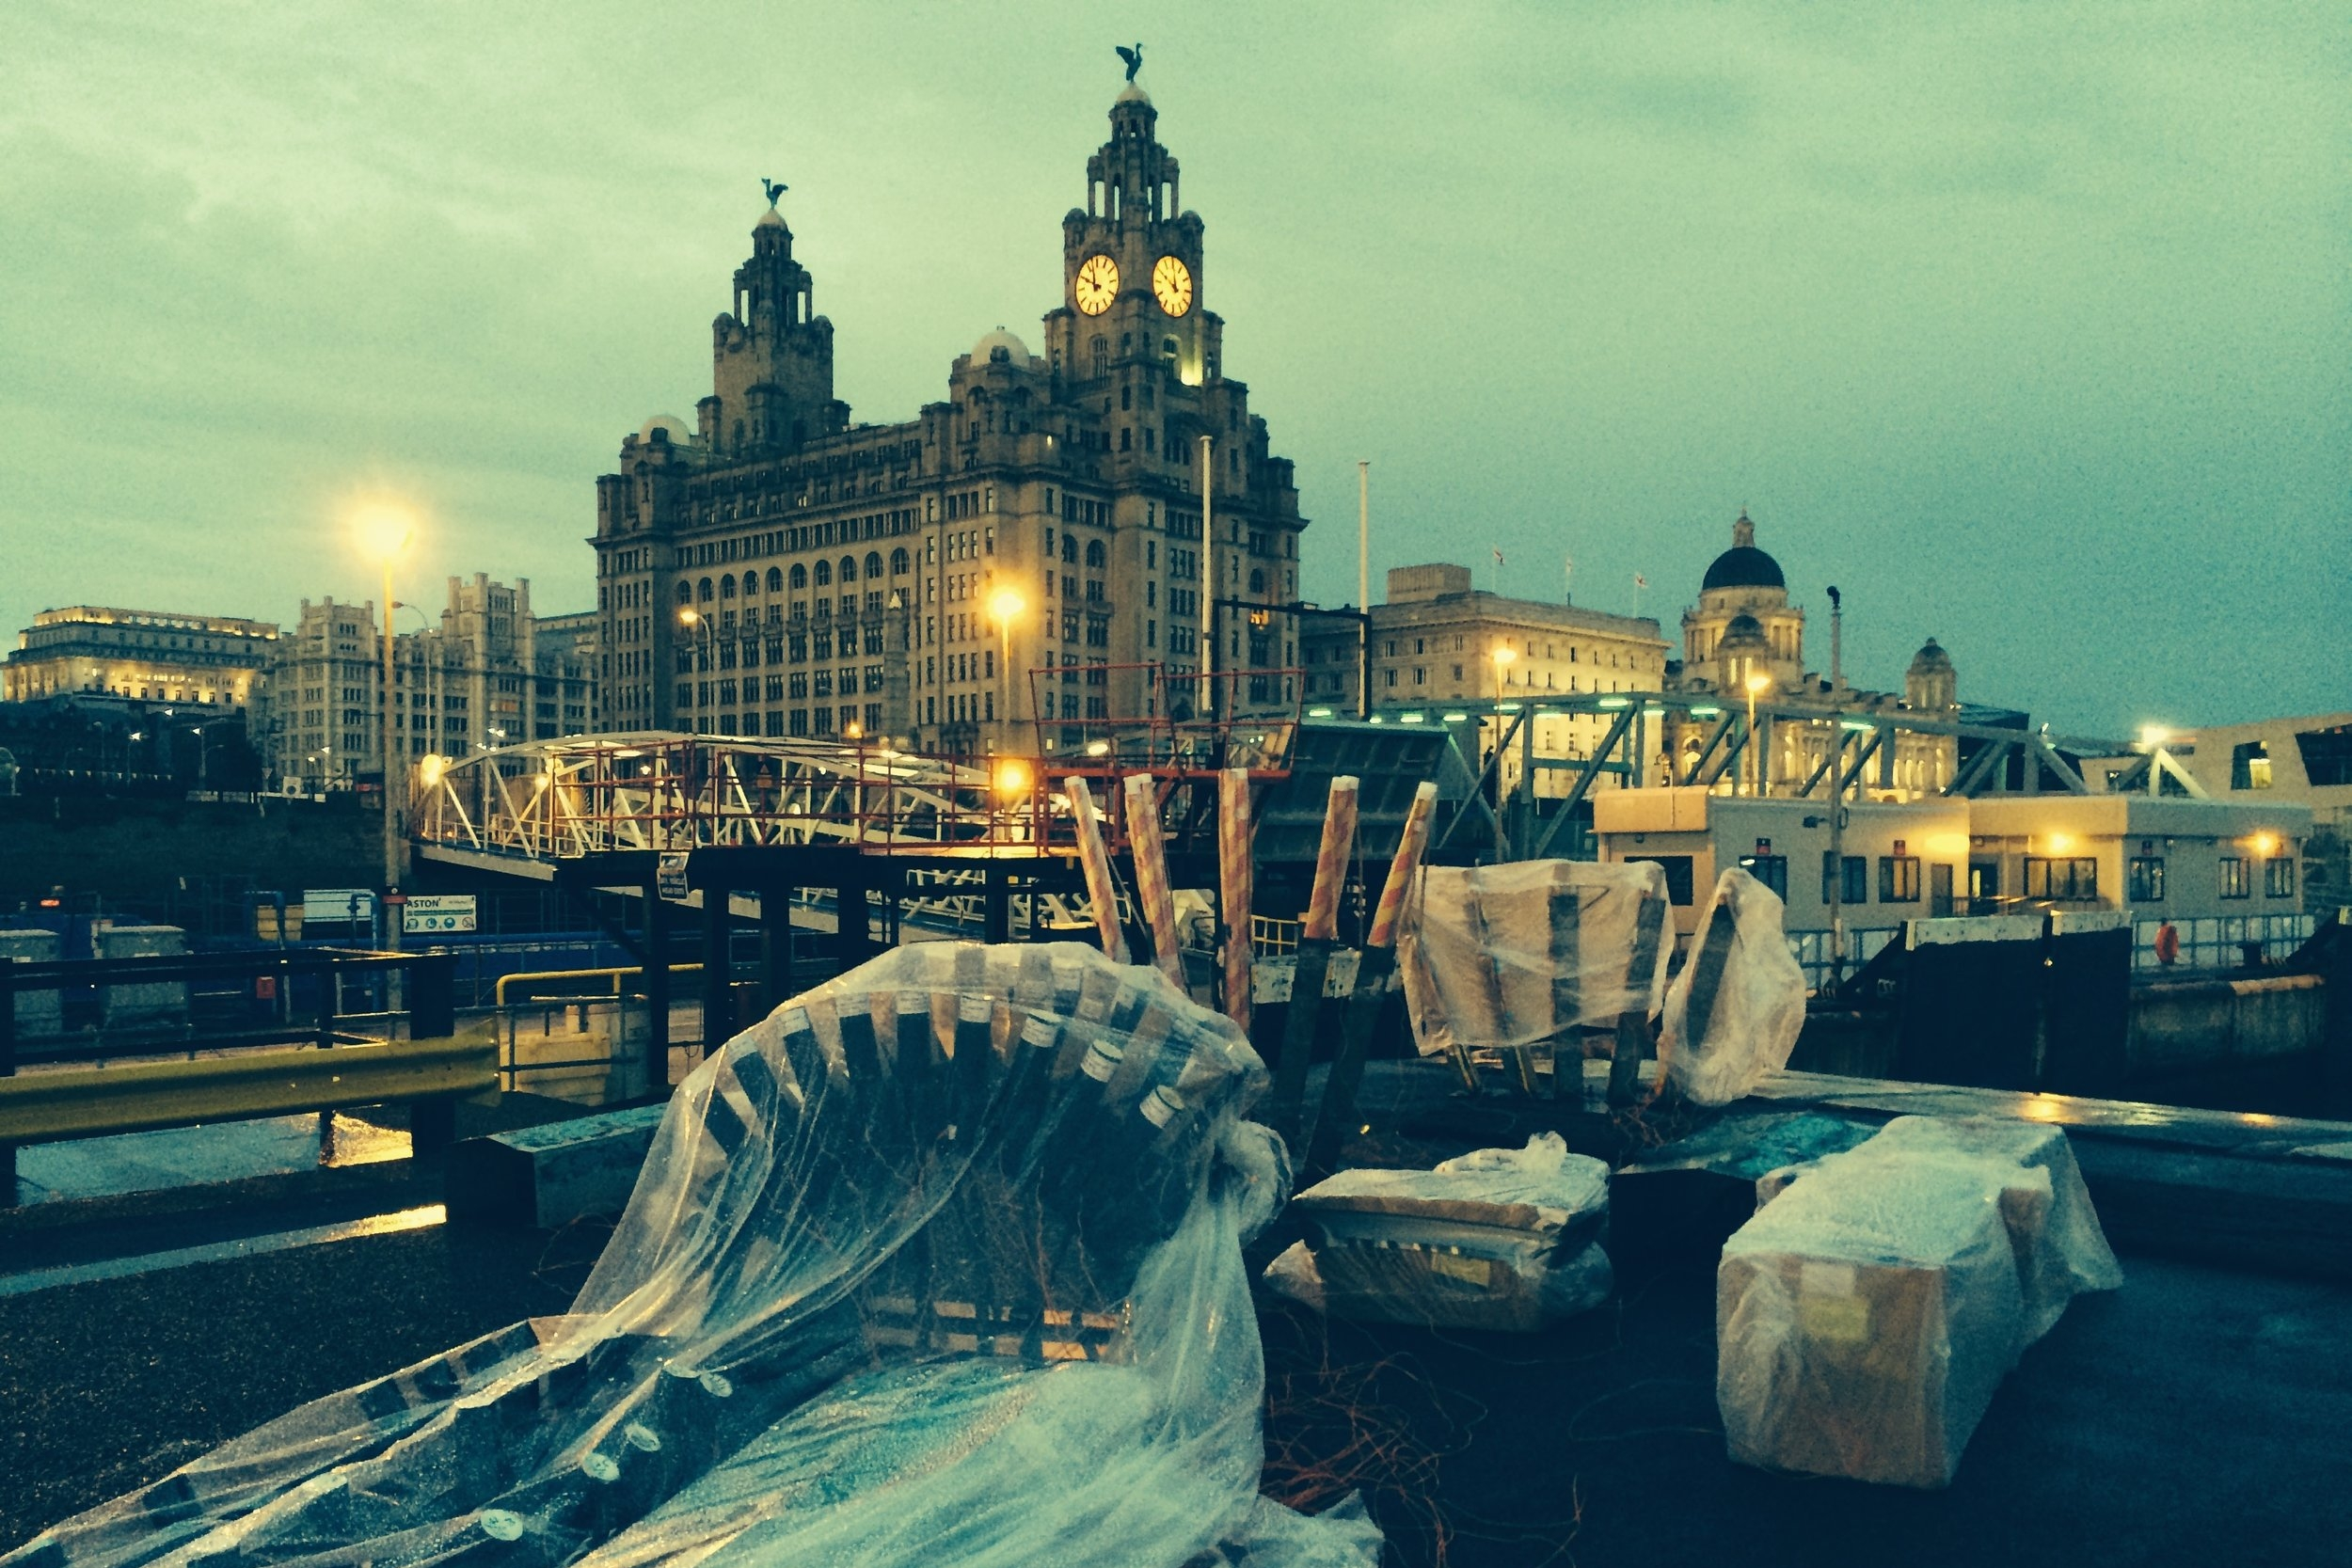 The City of liverpool -